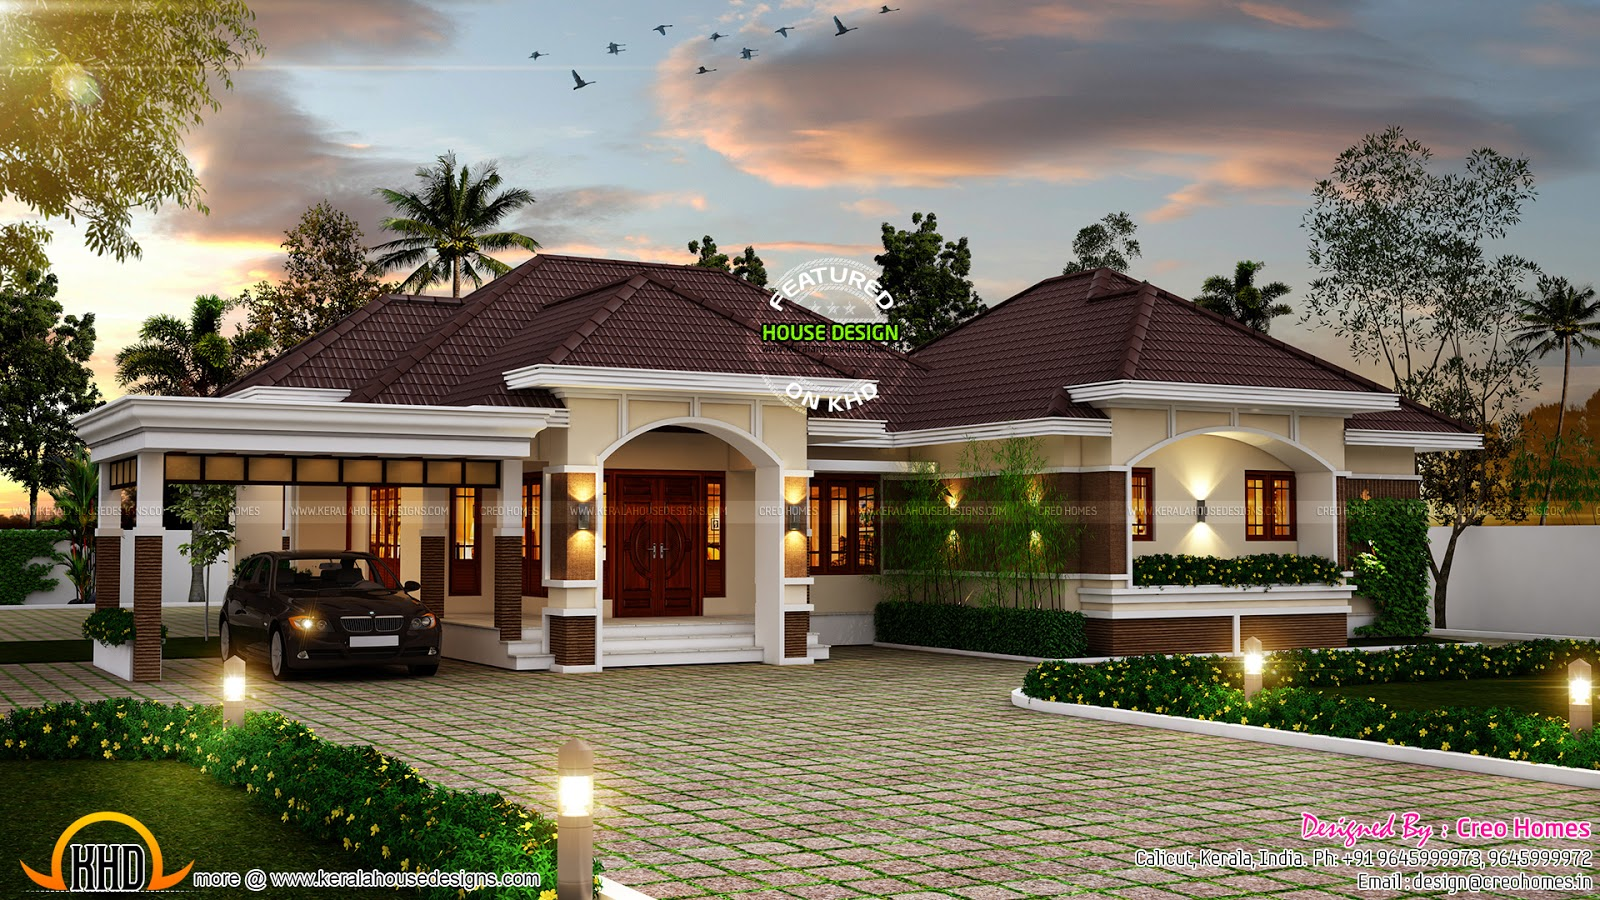 Outstanding bungalow in kerala kerala home design and for House plans in kerala with estimate